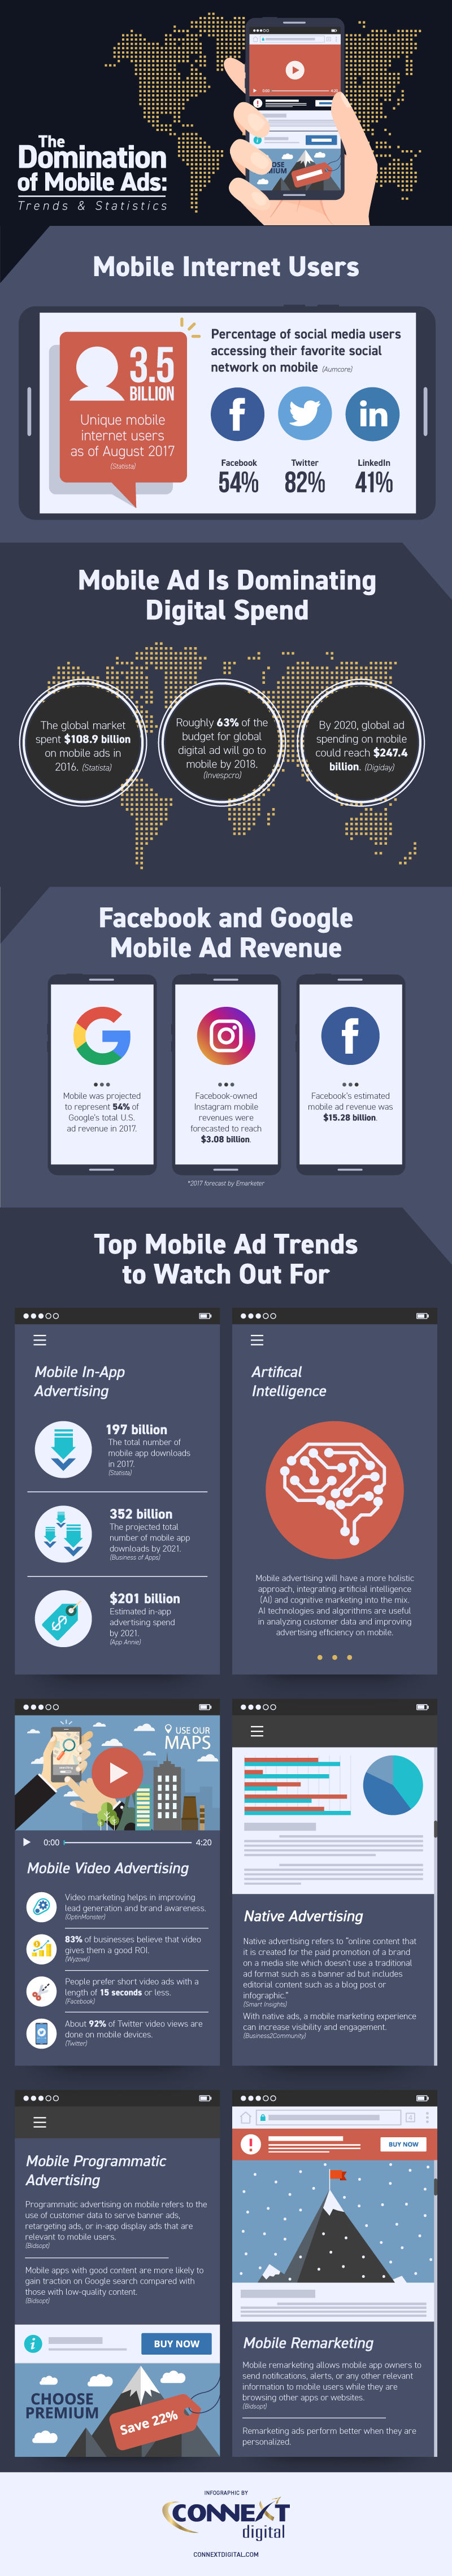 The Domination of Mobile Ads: Trends and Statistics